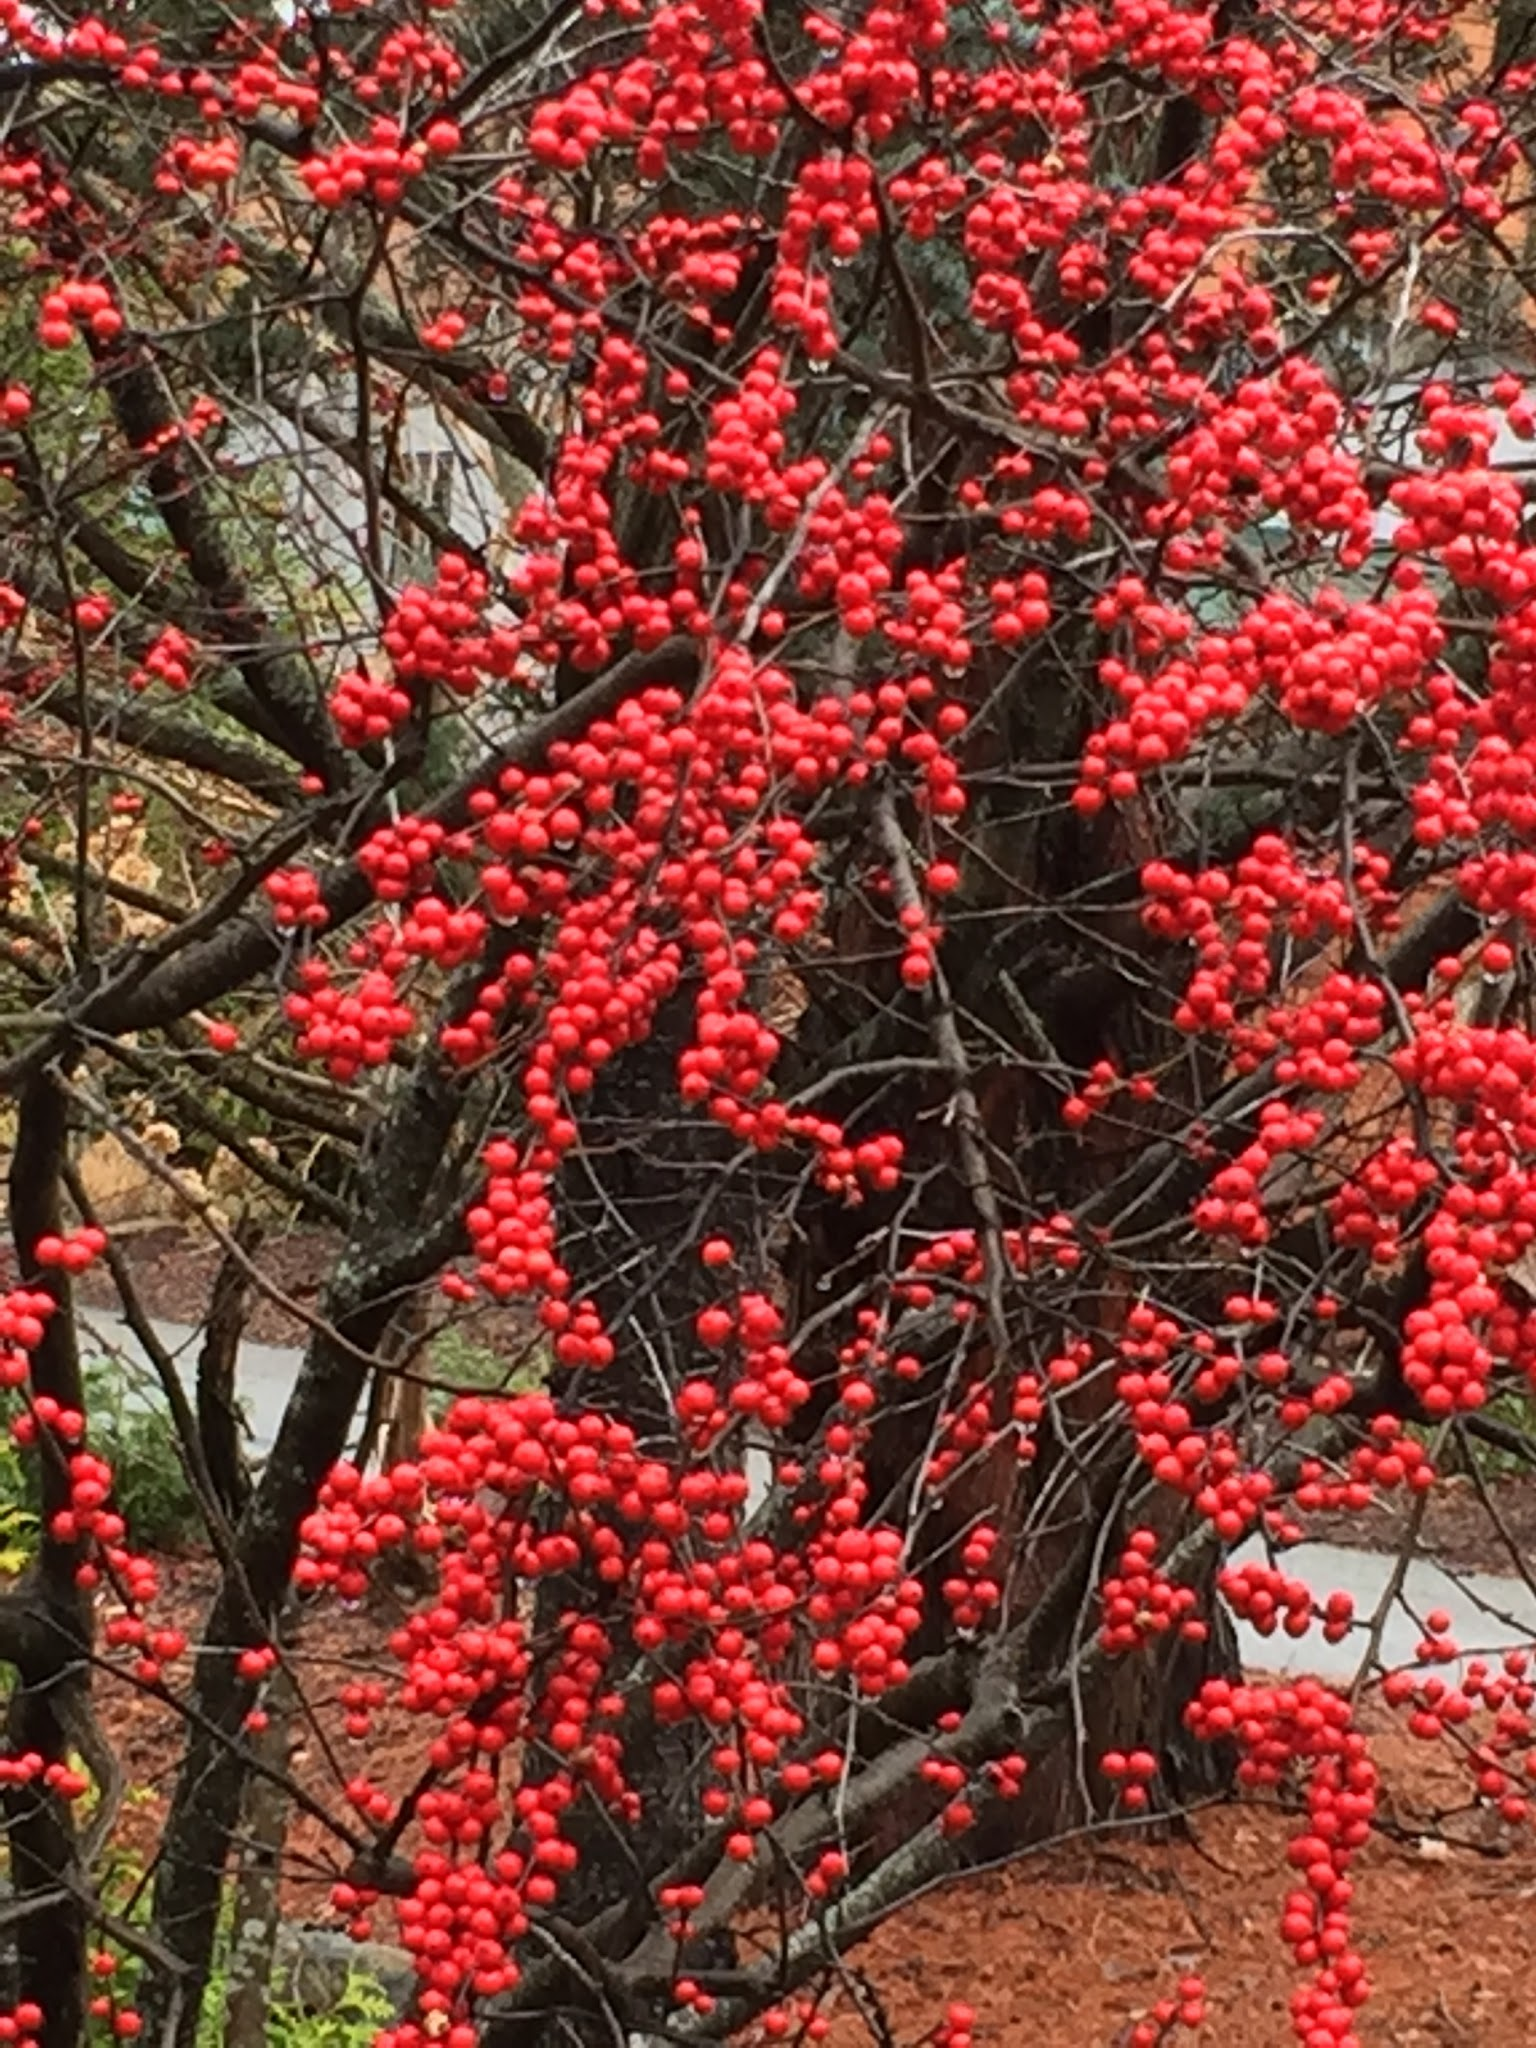 These winterberries are very showy in fall. This shrub gets 8' x 5'. Smaller varieties are available.